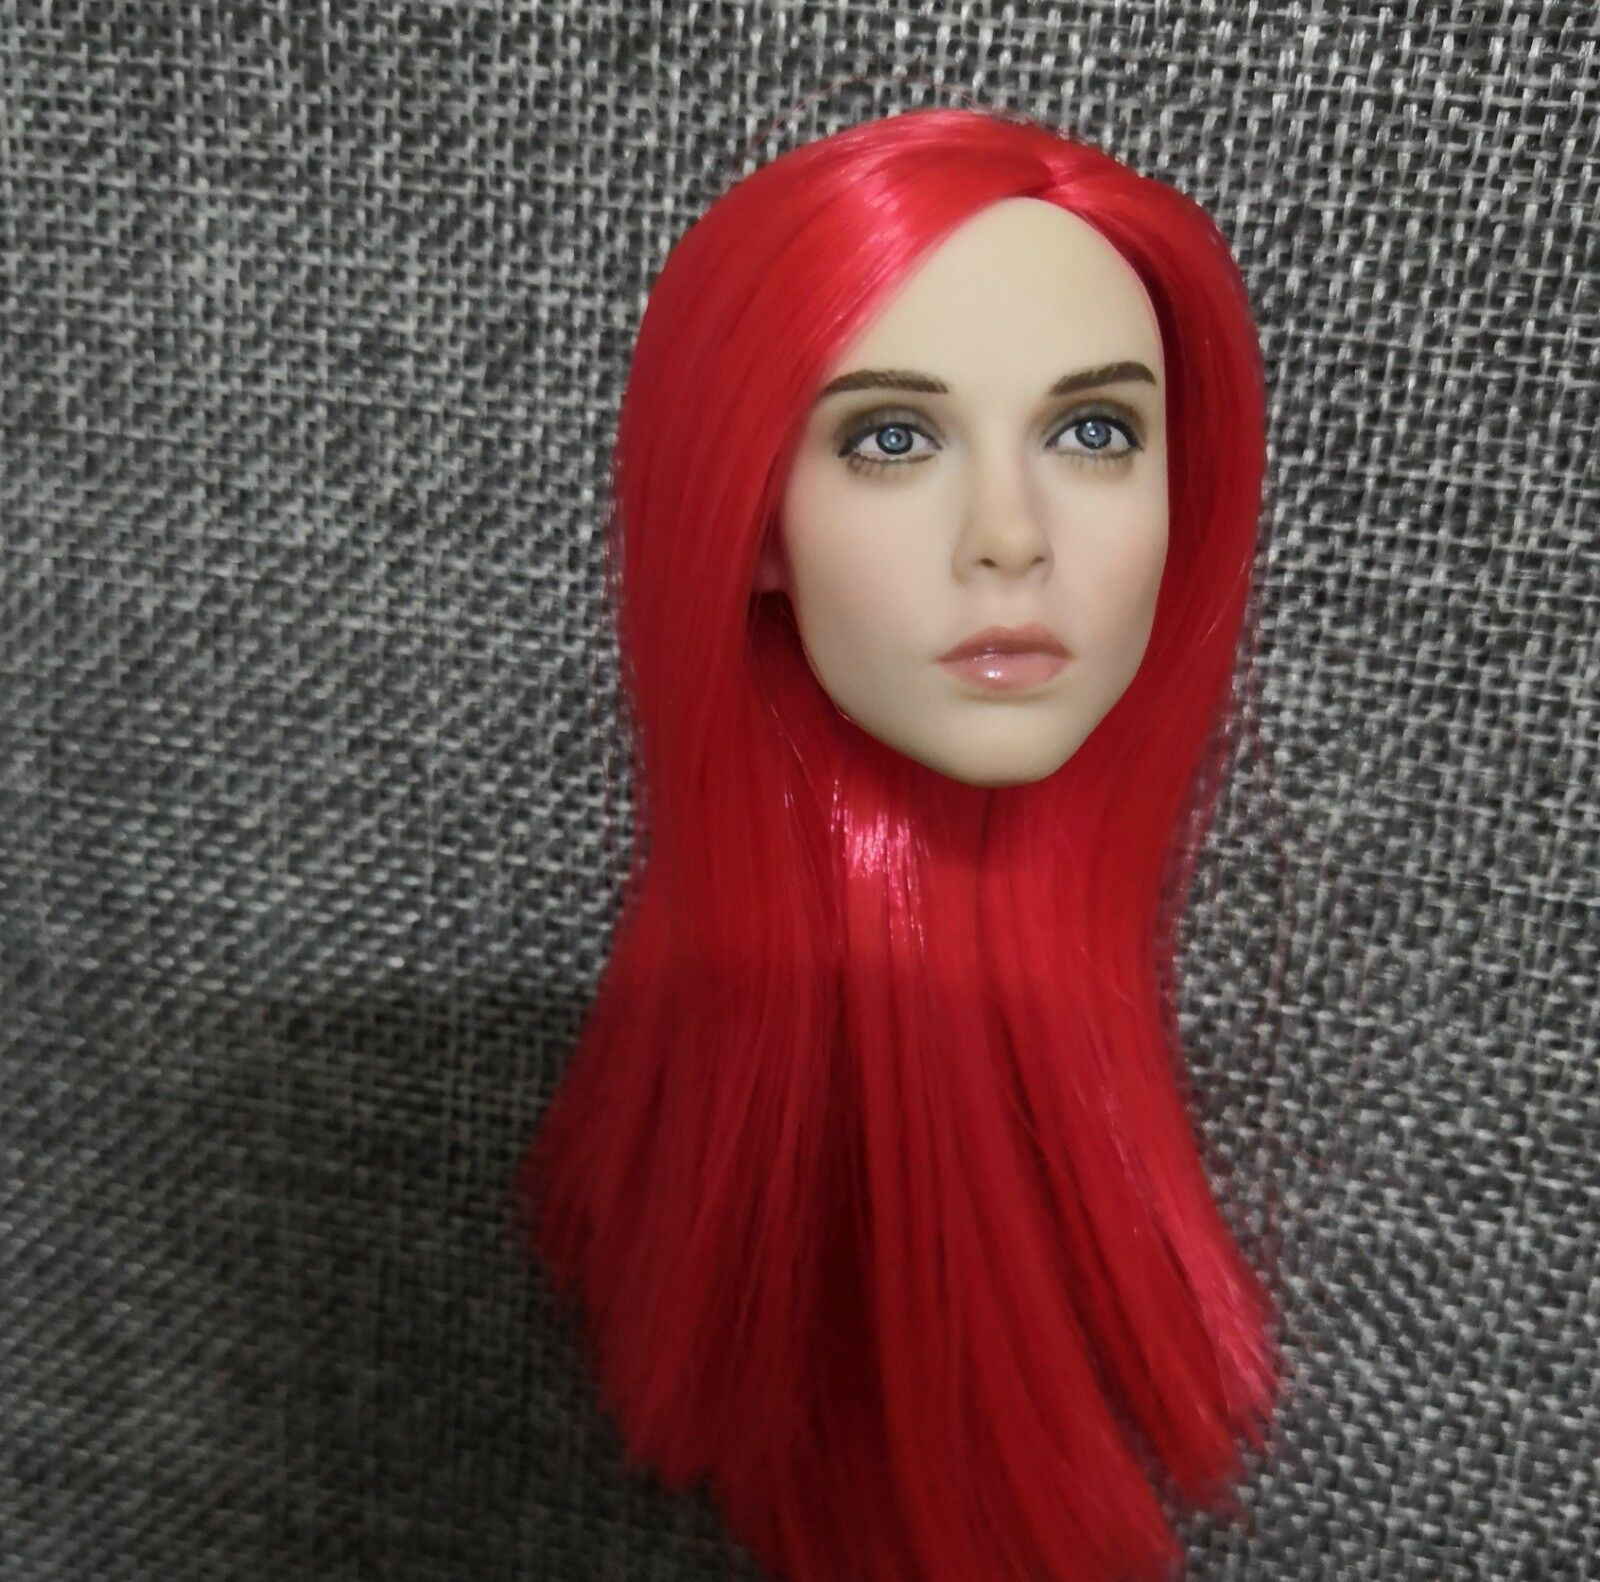 1 6 6 6 Female Head Sculpt Head Carving Red Hair Fit 12  Phicen Action Figure Body d3dac0